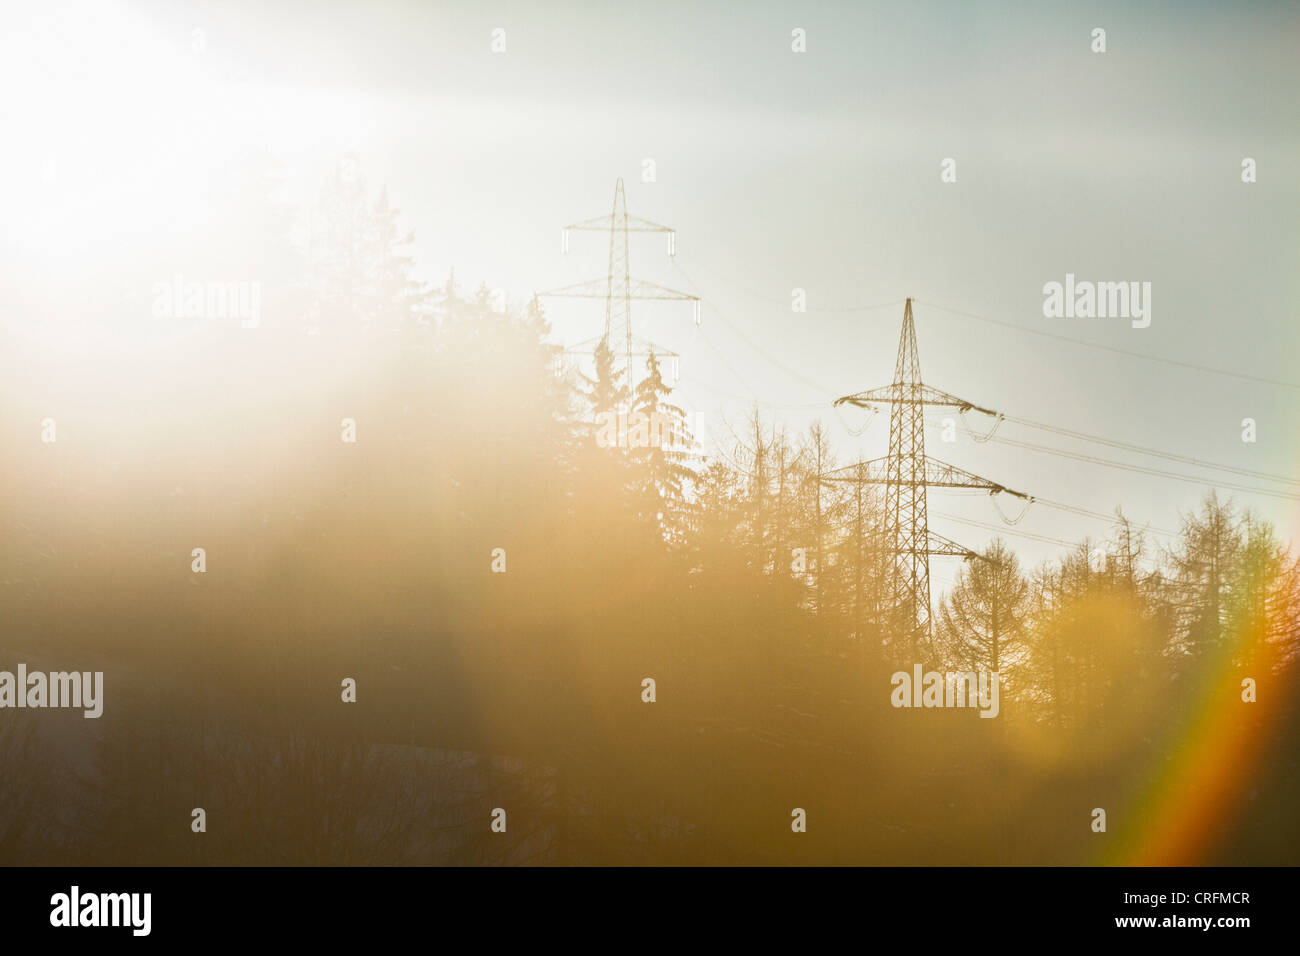 Telephone poles over trees - Stock Image